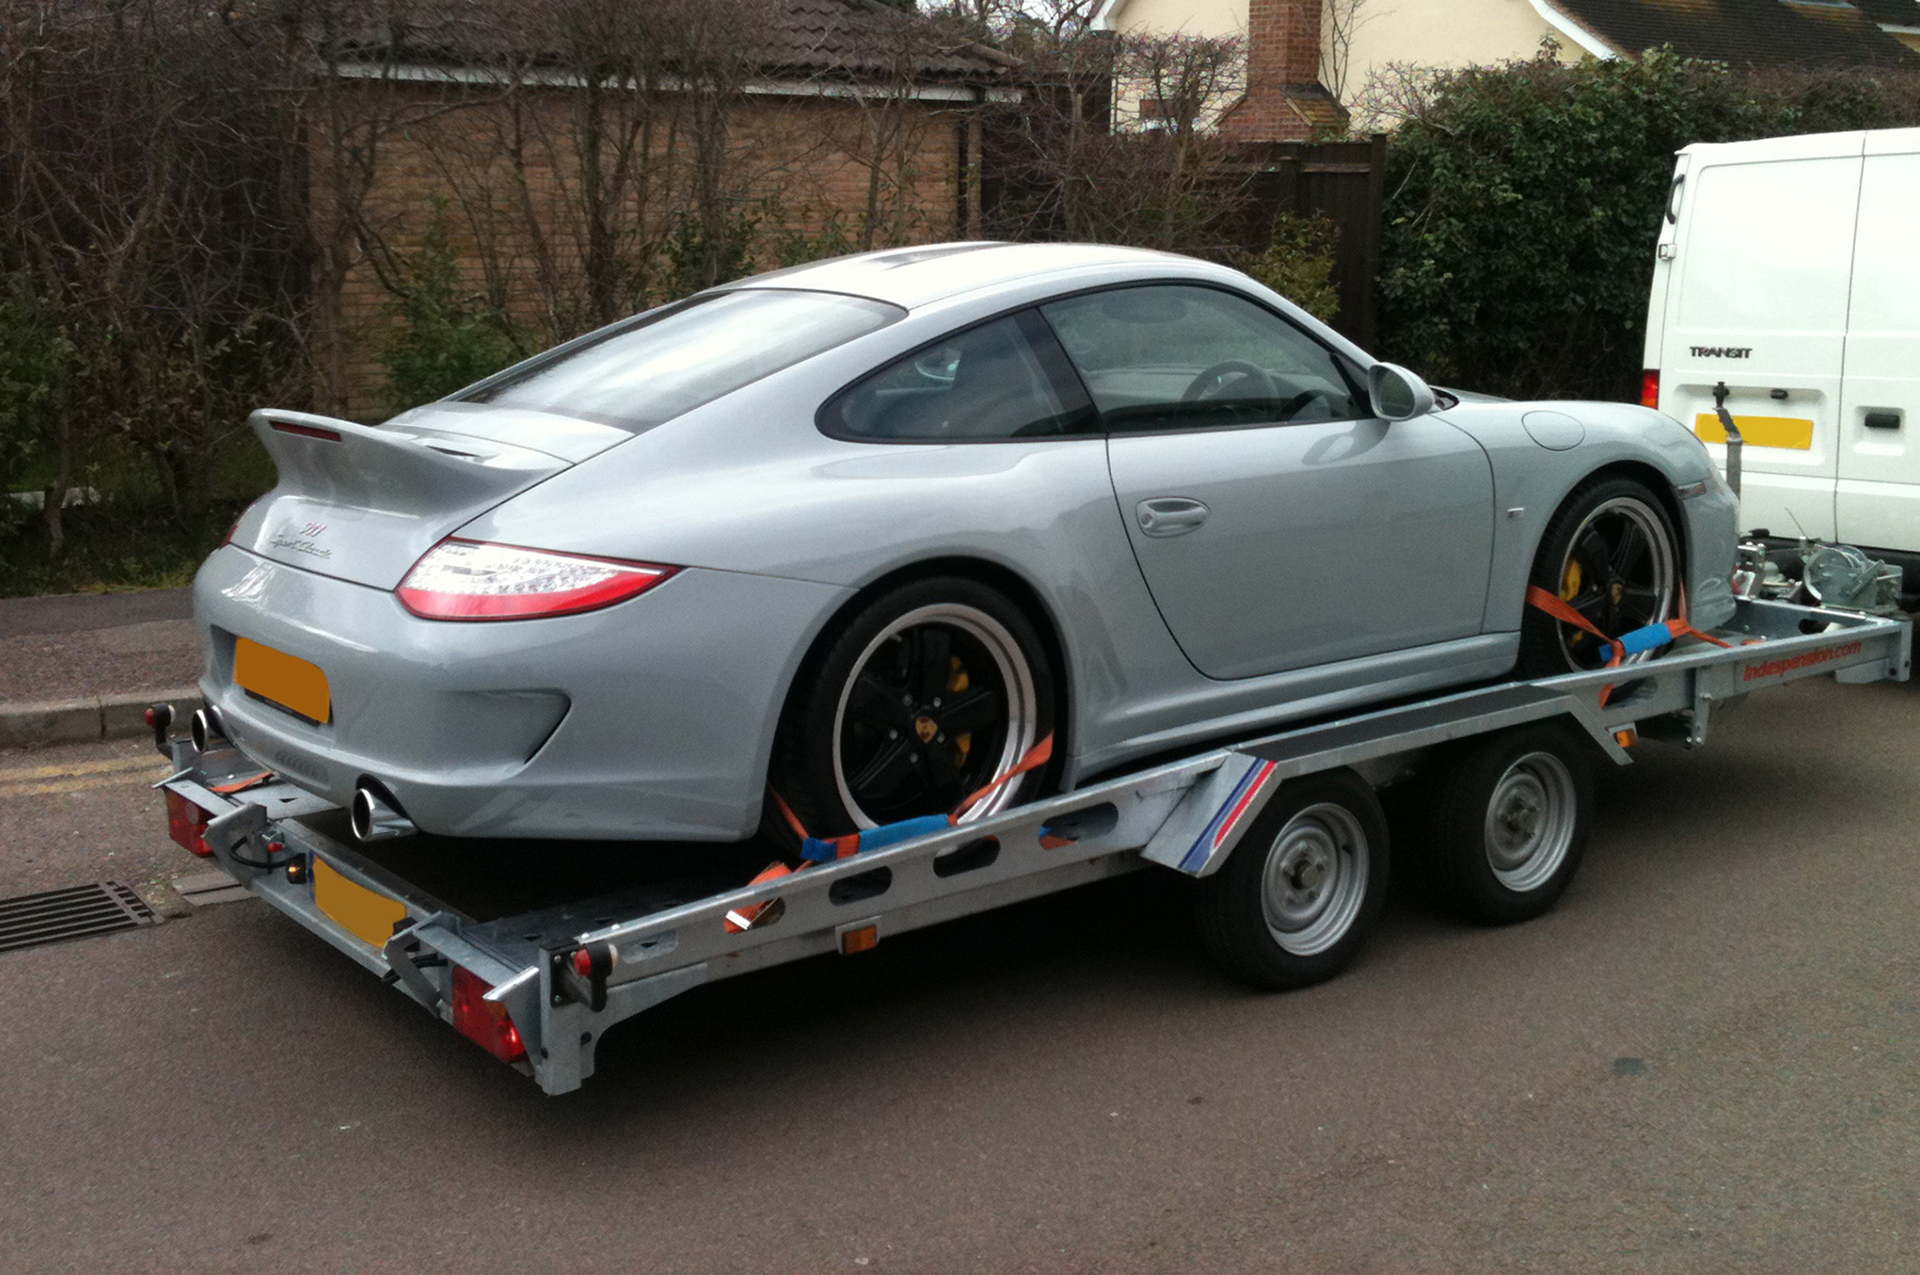 Porsche 911 being transported to event